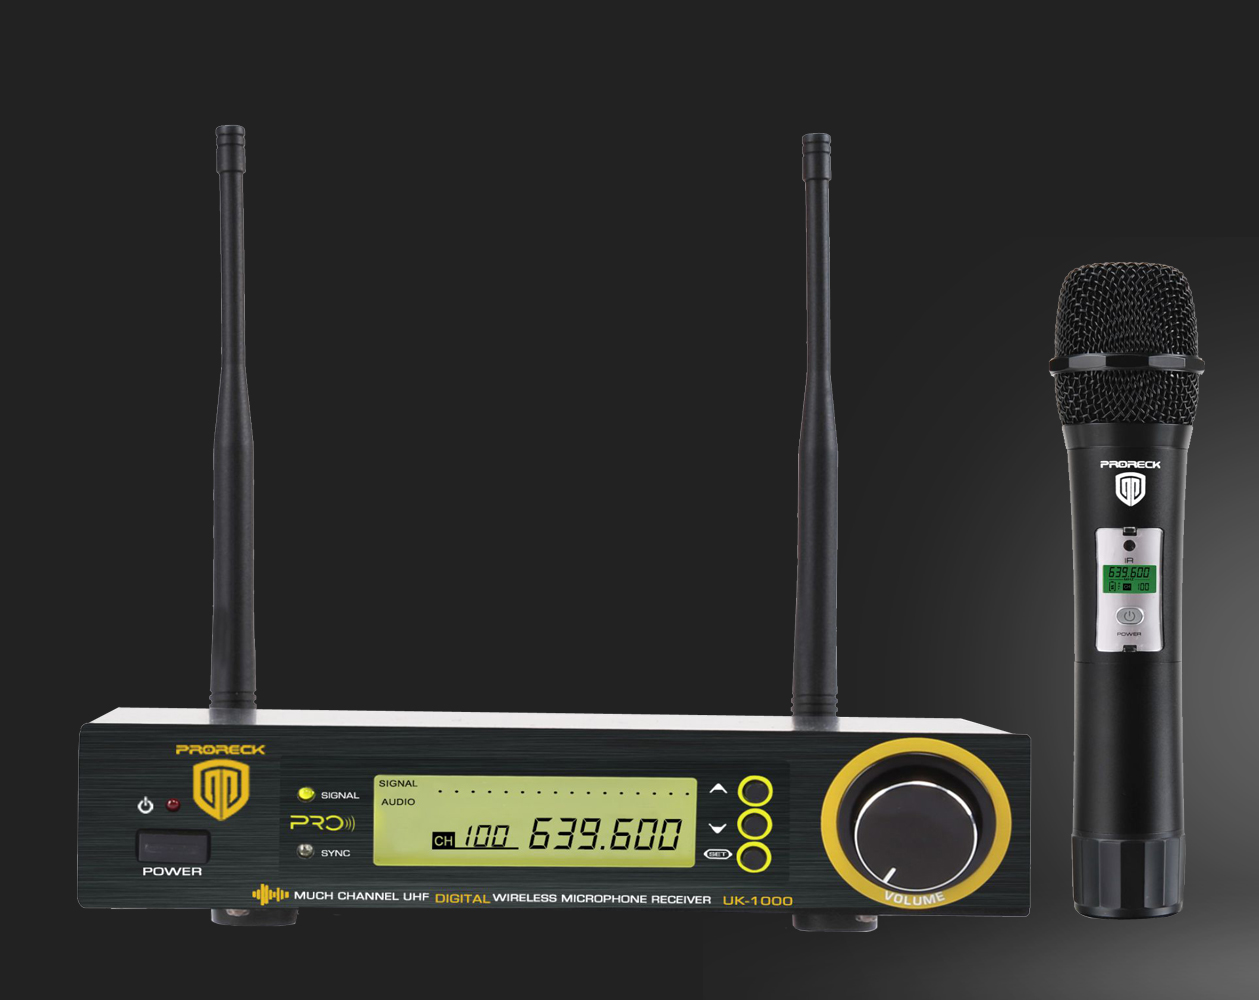 PRORECK UK-1000 UHF Wireless Microphone System with Hand-held Microphone 100 Selectable Frequencies, 200 Feet Operating Range, K